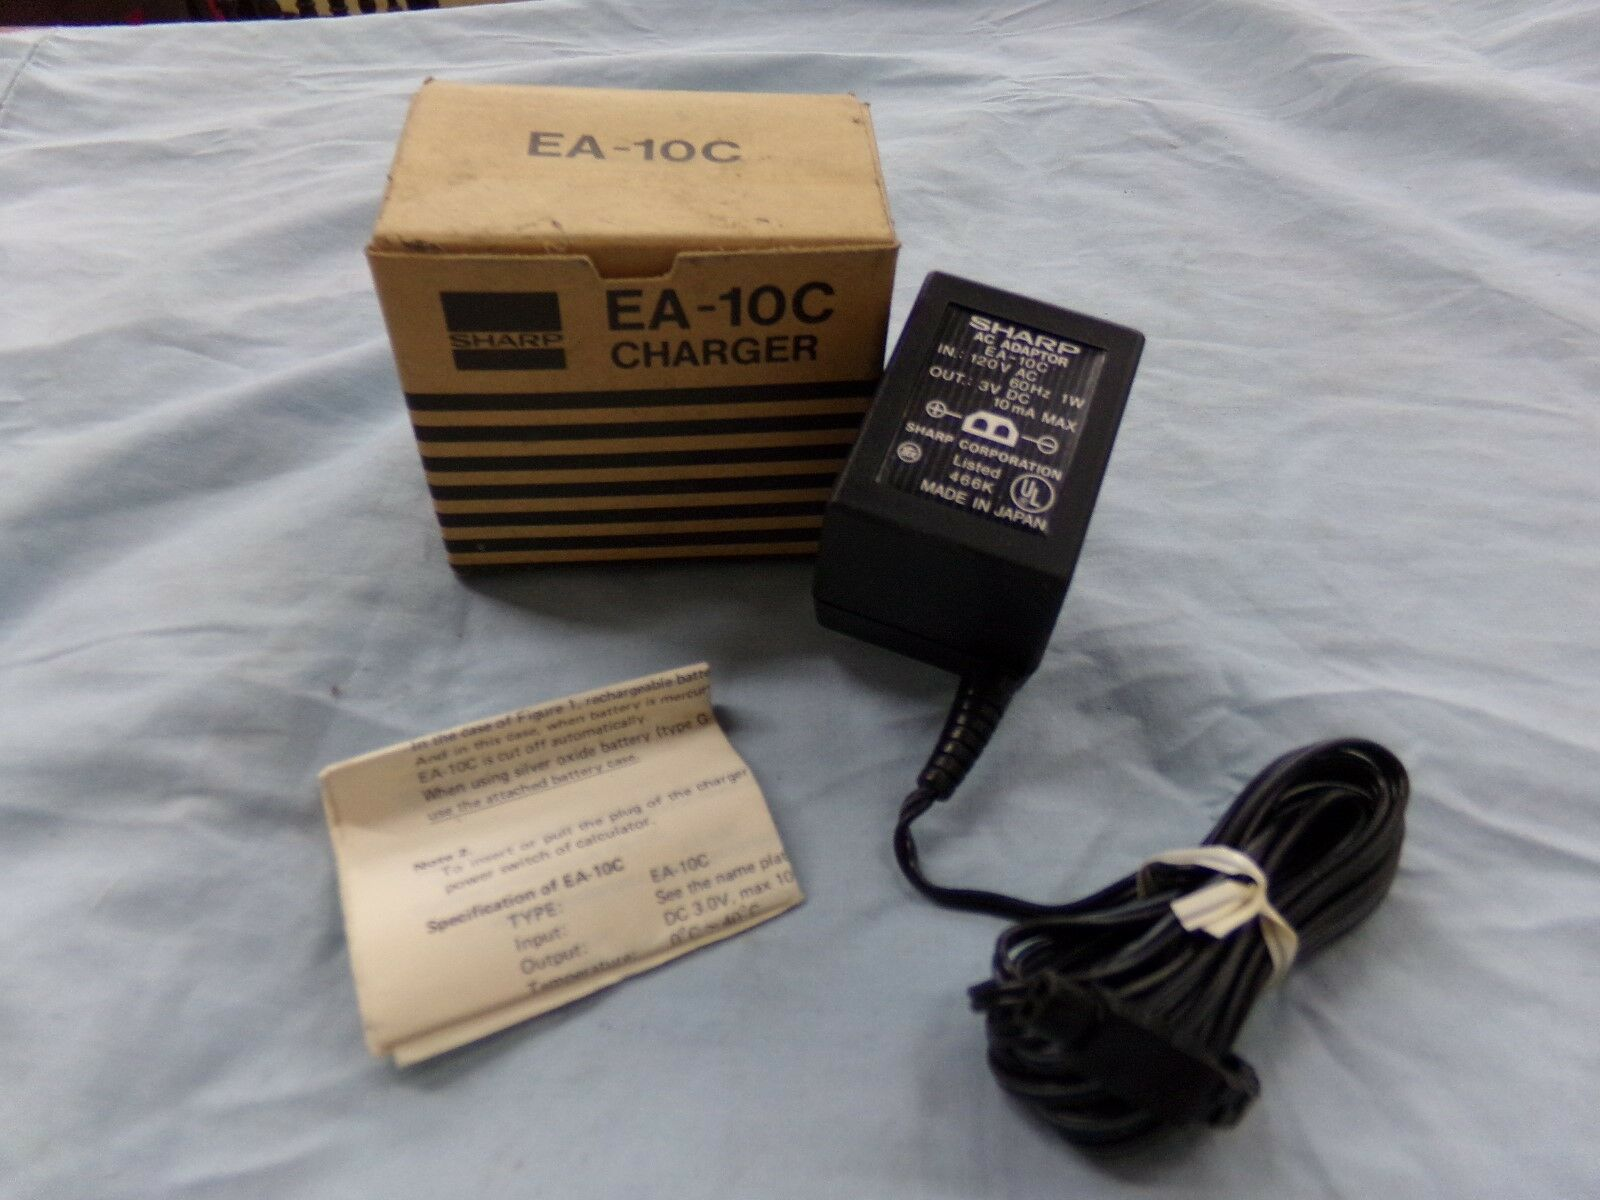 Sharp EA-10C AC Adapter Power Supply Cord Cable Charger Electronic Calculator Genuine Original